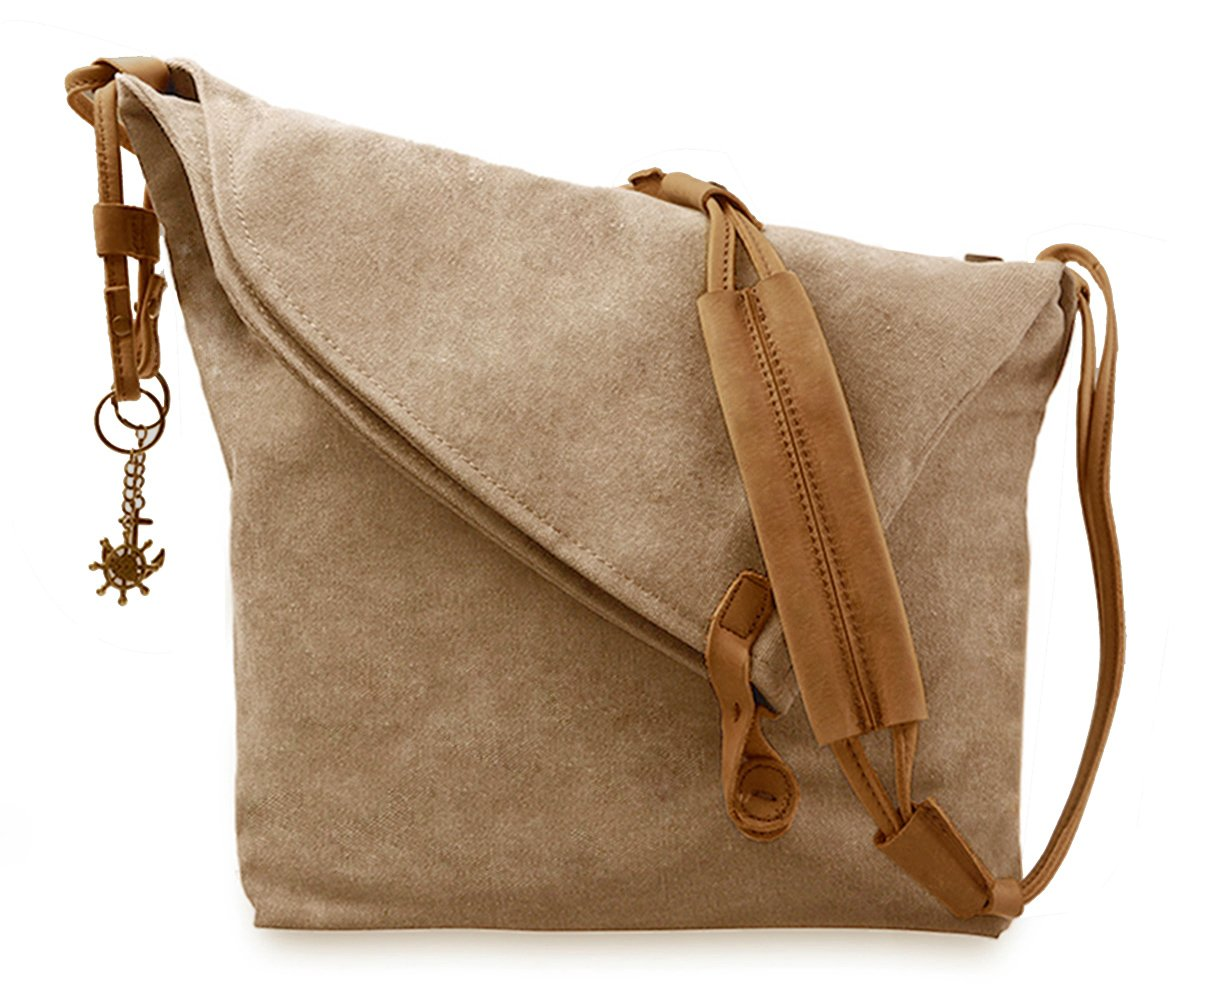 Fansela(TM) Messenger Bag, Crossbody Satchel Bag Retro Canvas Hobo Bag Oversized